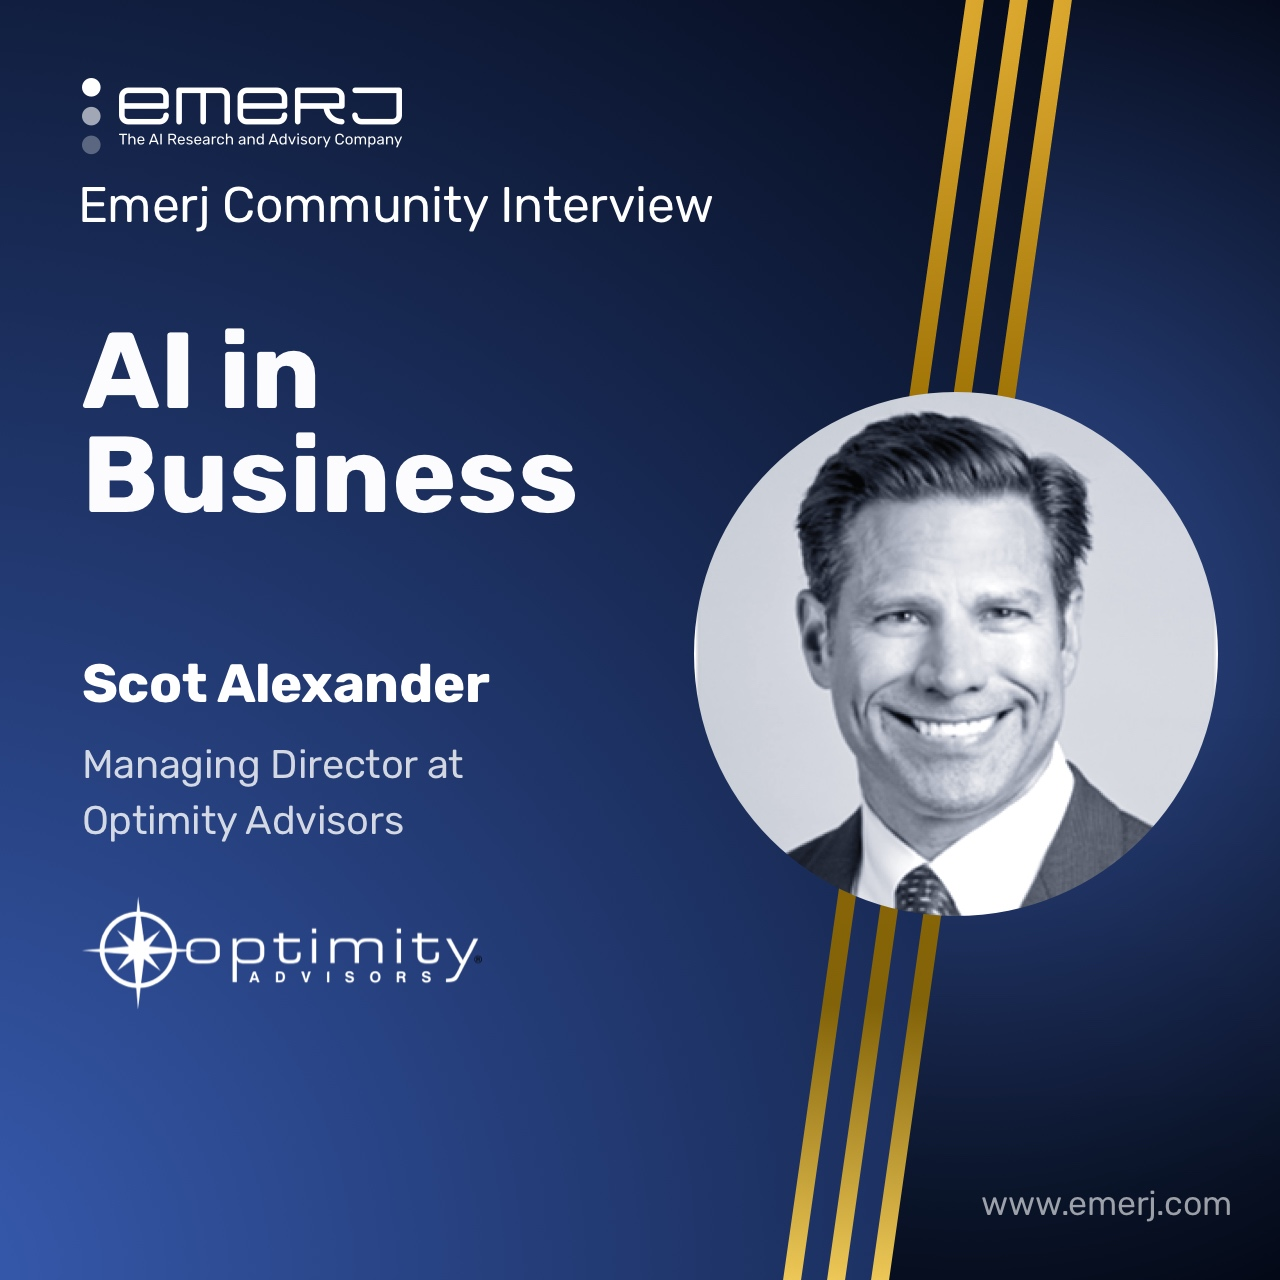 2021 AI Trends and Transformation - with Scot Alexander of Optimity Advisors